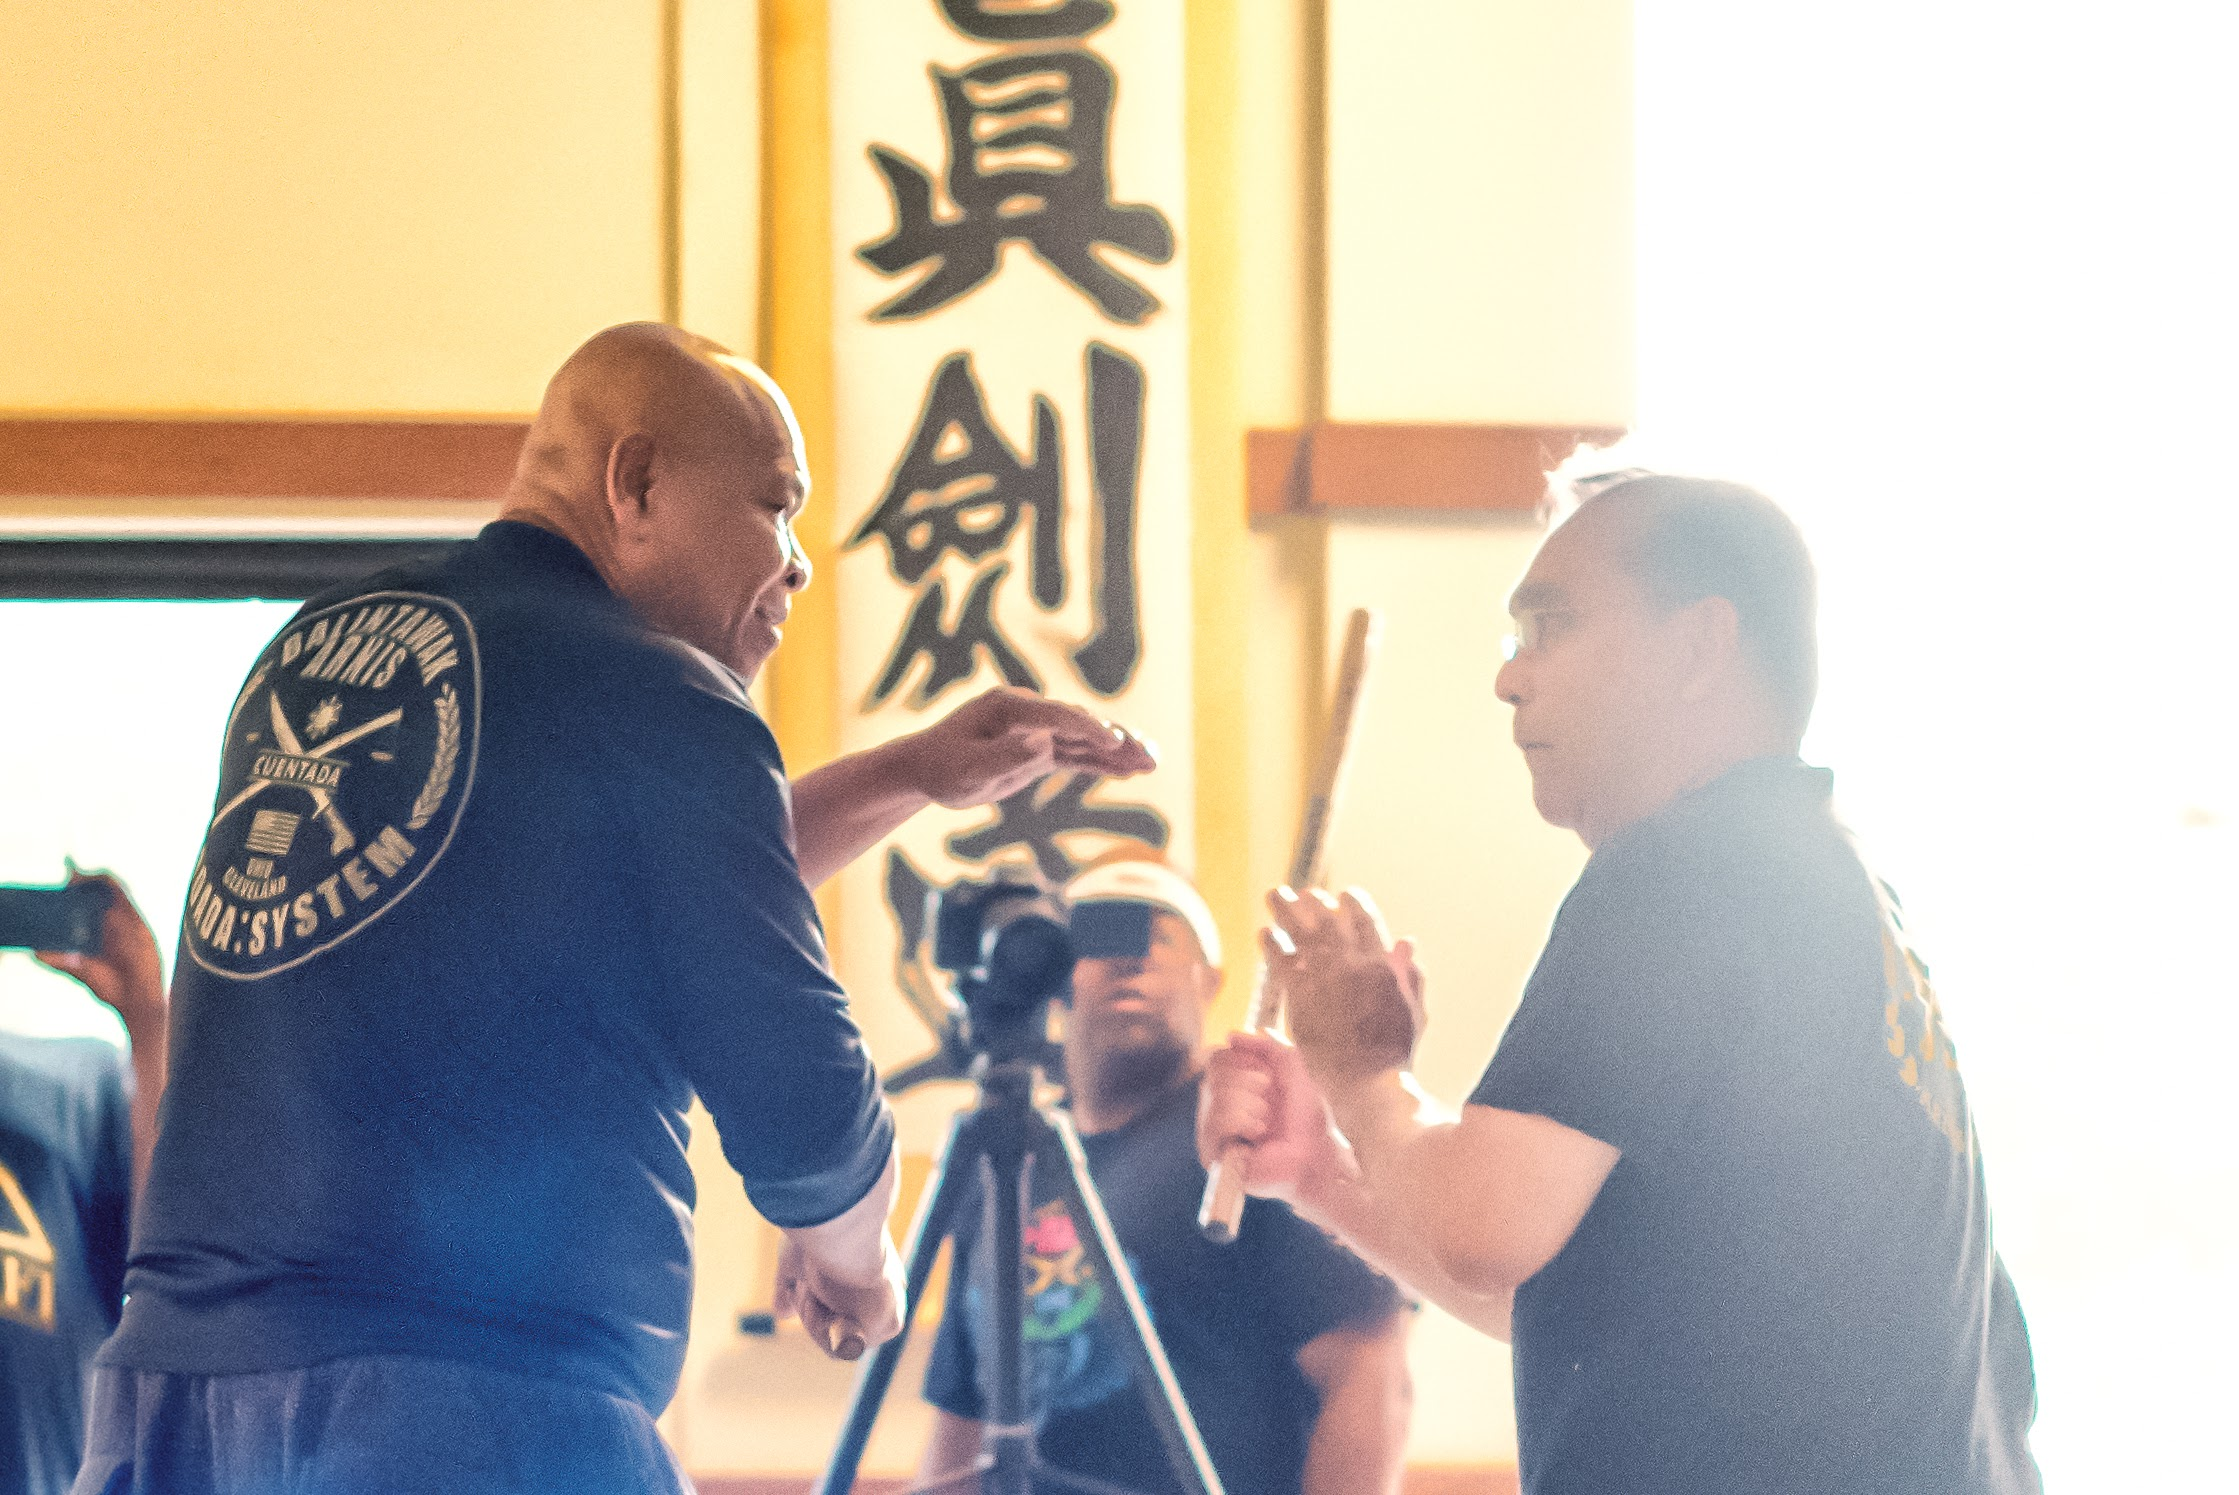 GM Taboada instructing with his student, FQI Jemar Carcellar, in Atlanta GA 6.18.2016